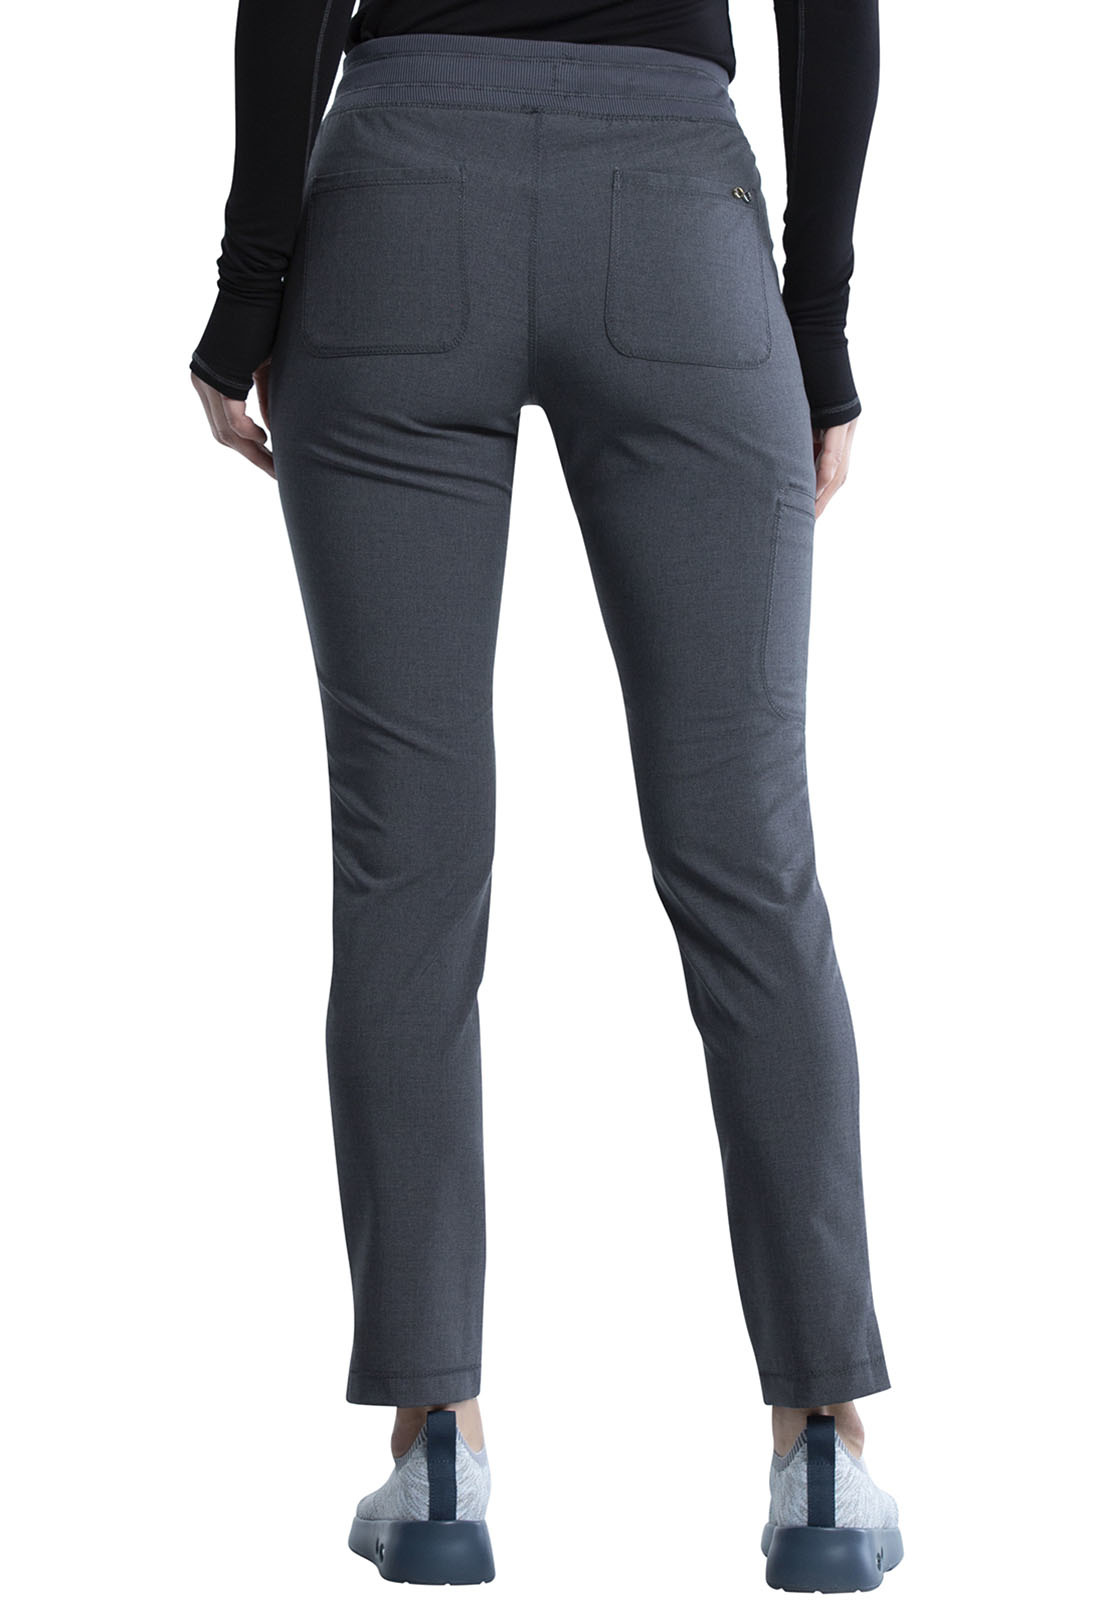 CHEROKEE Pull-on Pants Heather Charcoal CK135A